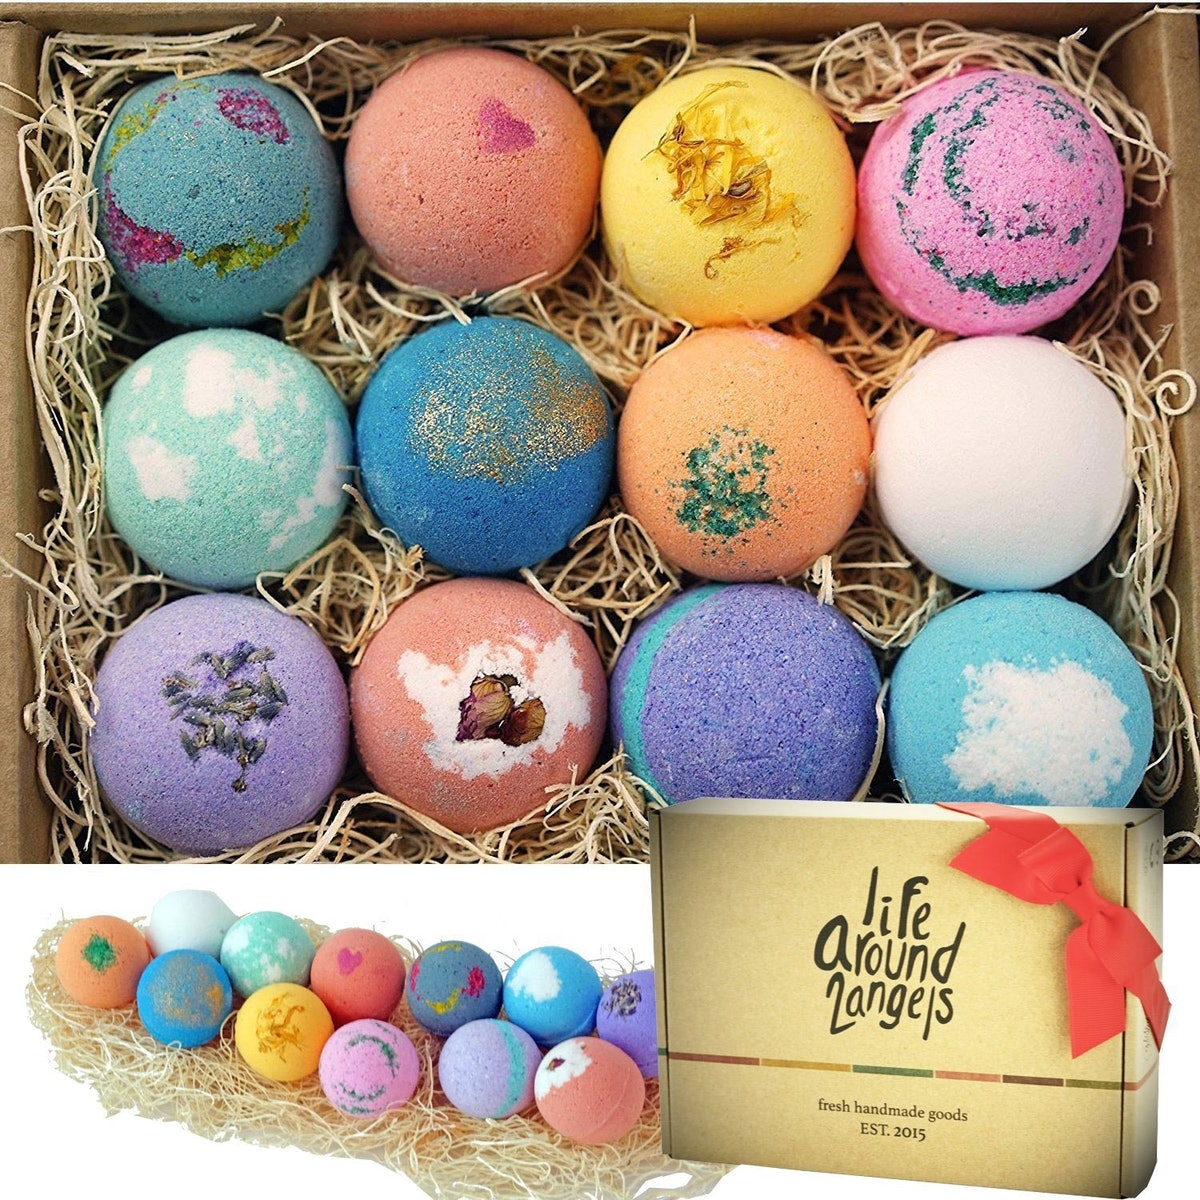 LifeAround2Angels Bath Bombs (12-Pack)